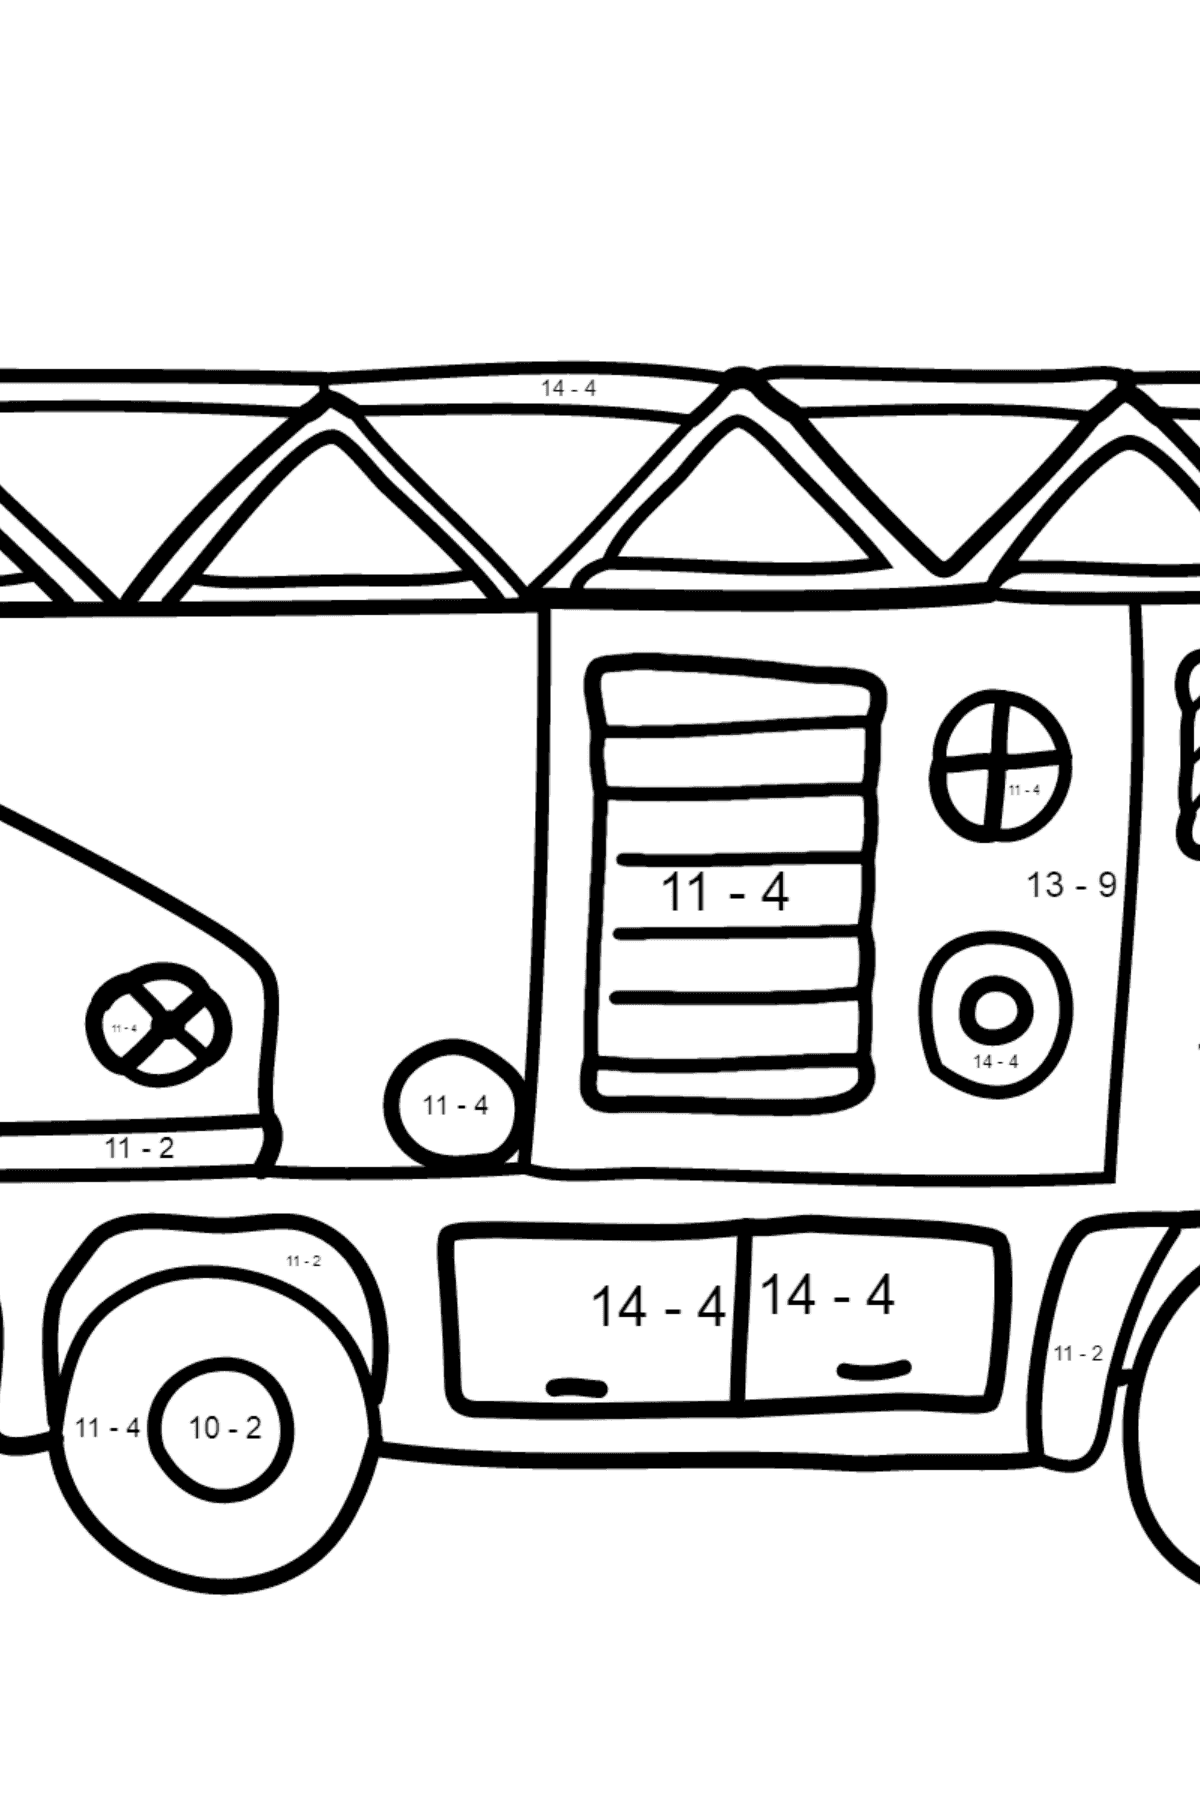 Coloring Page - A Fire Truck for Kids  - Color by Number Substraction